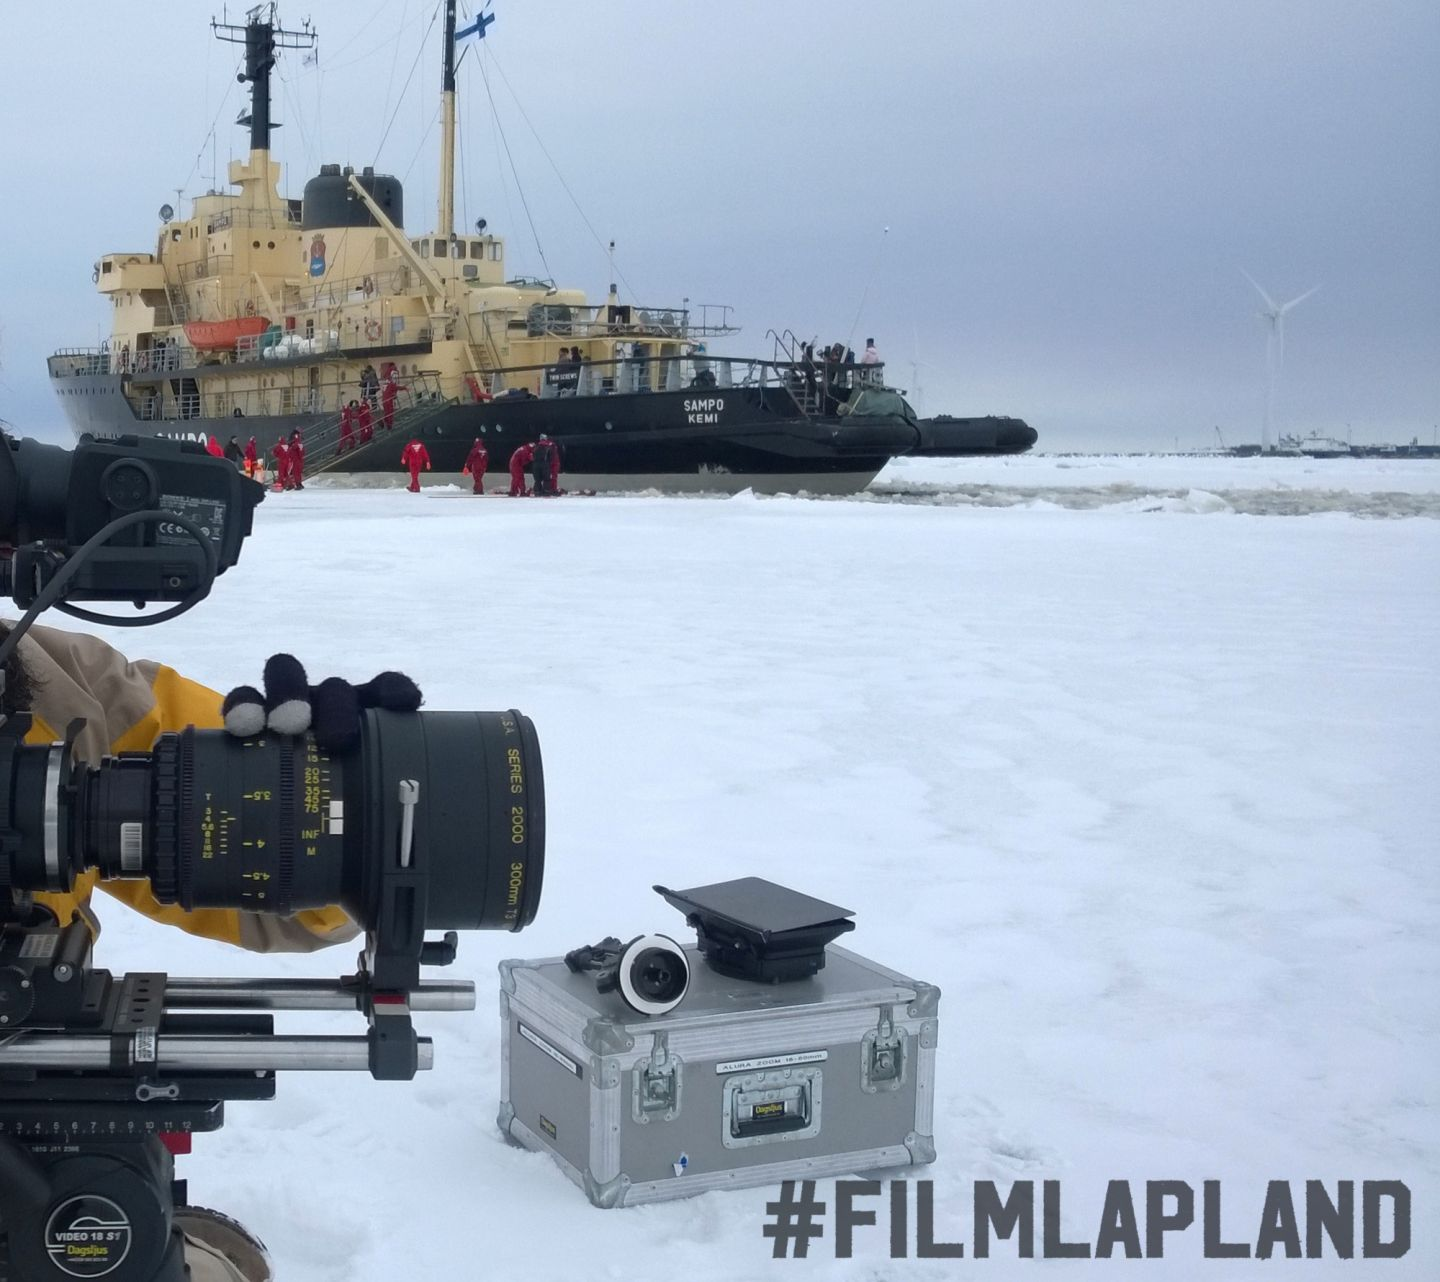 Filming a ship on the ice